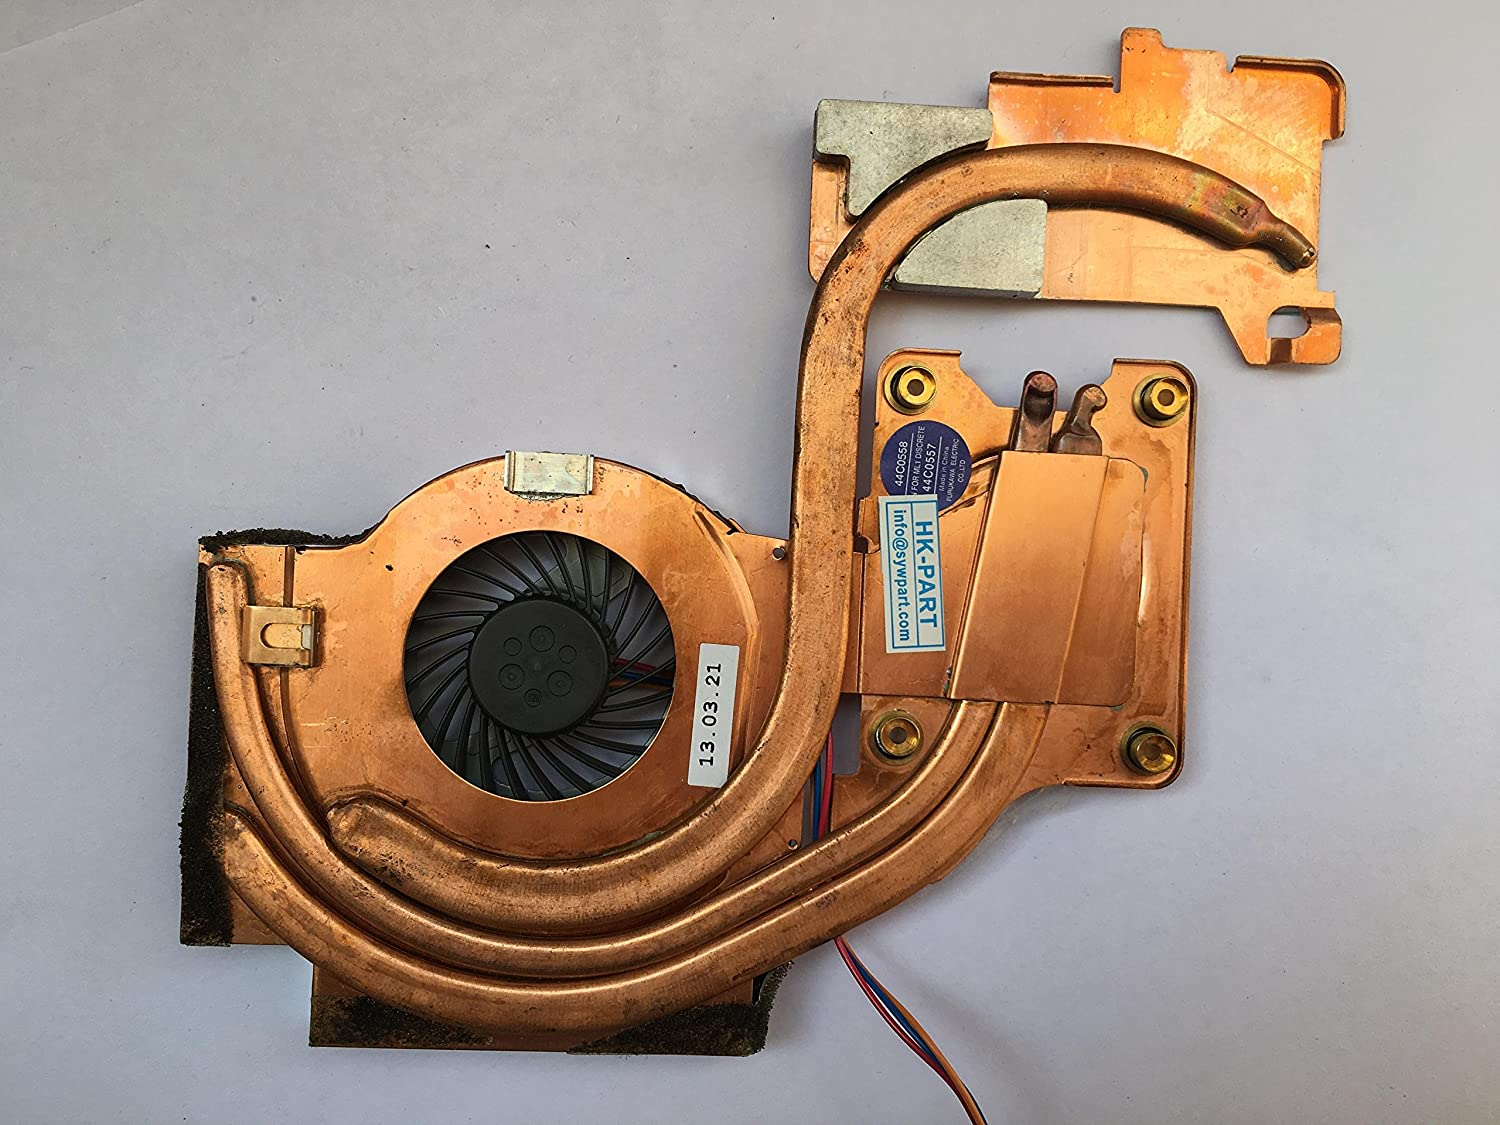 "HK-part Replacement Fan for IBM Thinkpad T61 T61p Cpu Cooling Fan with Heatsink Discret 14"" widescreen P/N 44C0557 44C0558 3-Pin 3-Wire"